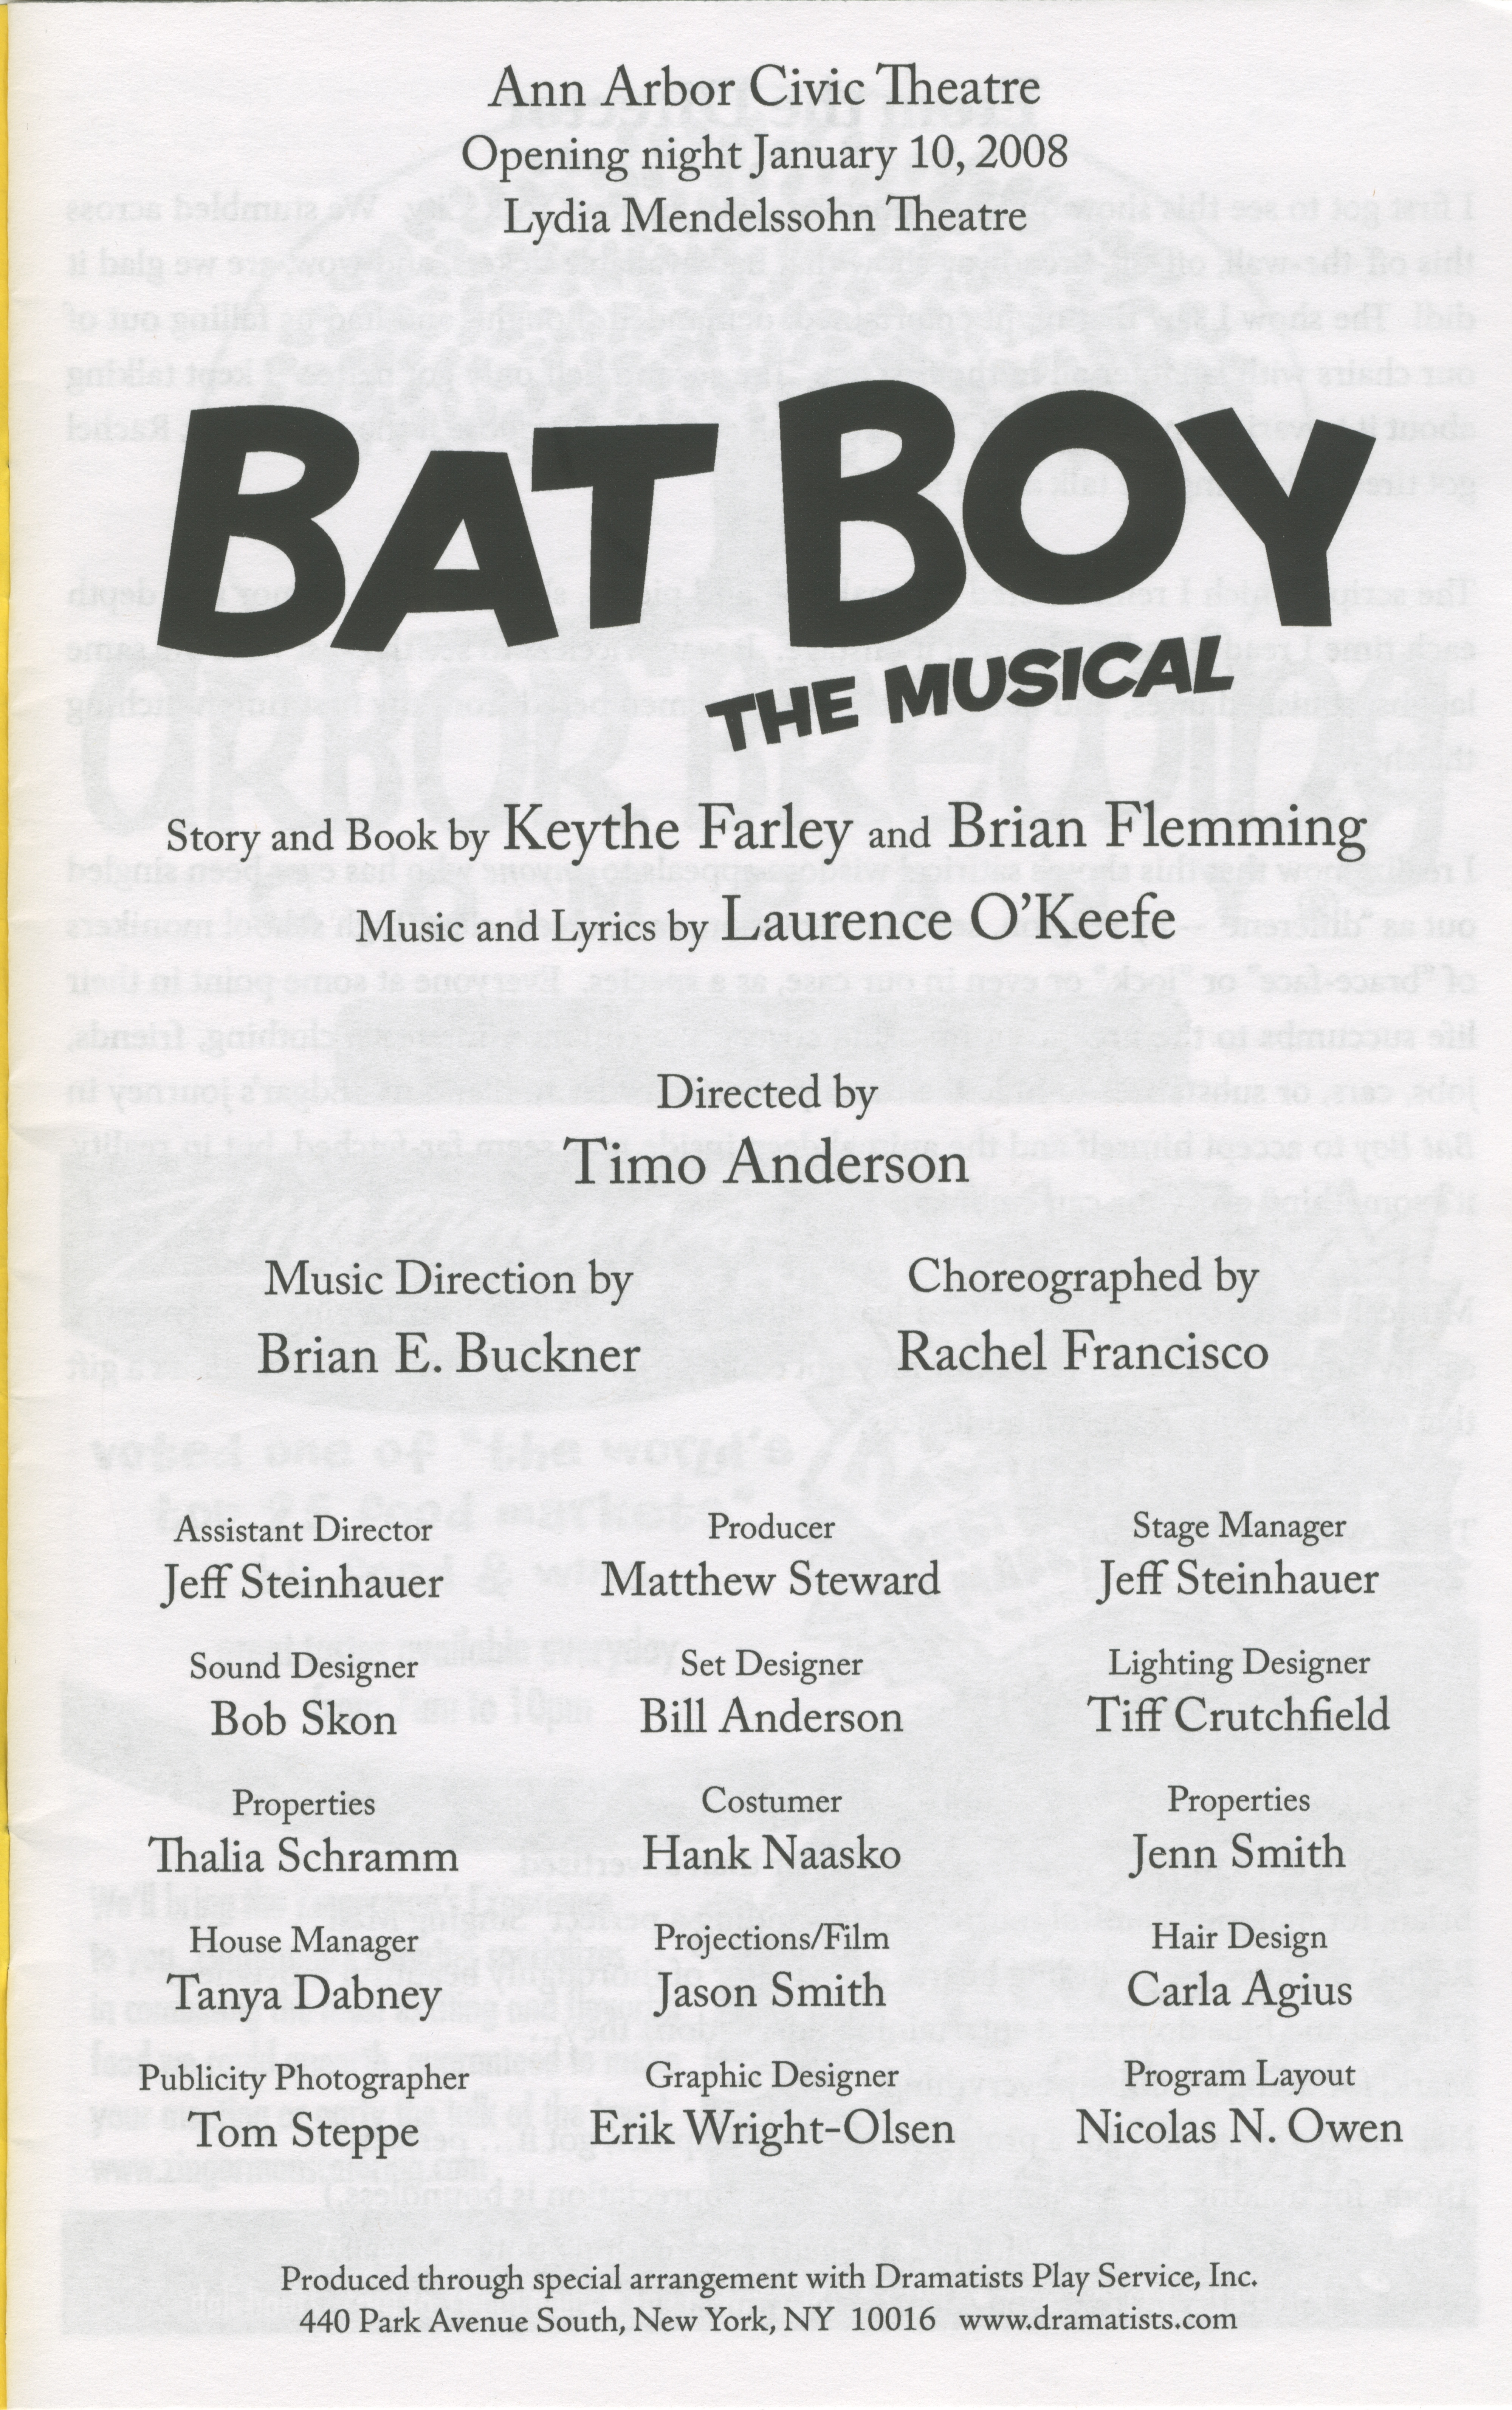 Ann Arbor Civic Theatre Program: Bat Boy The Musical, January 10, 2008 image